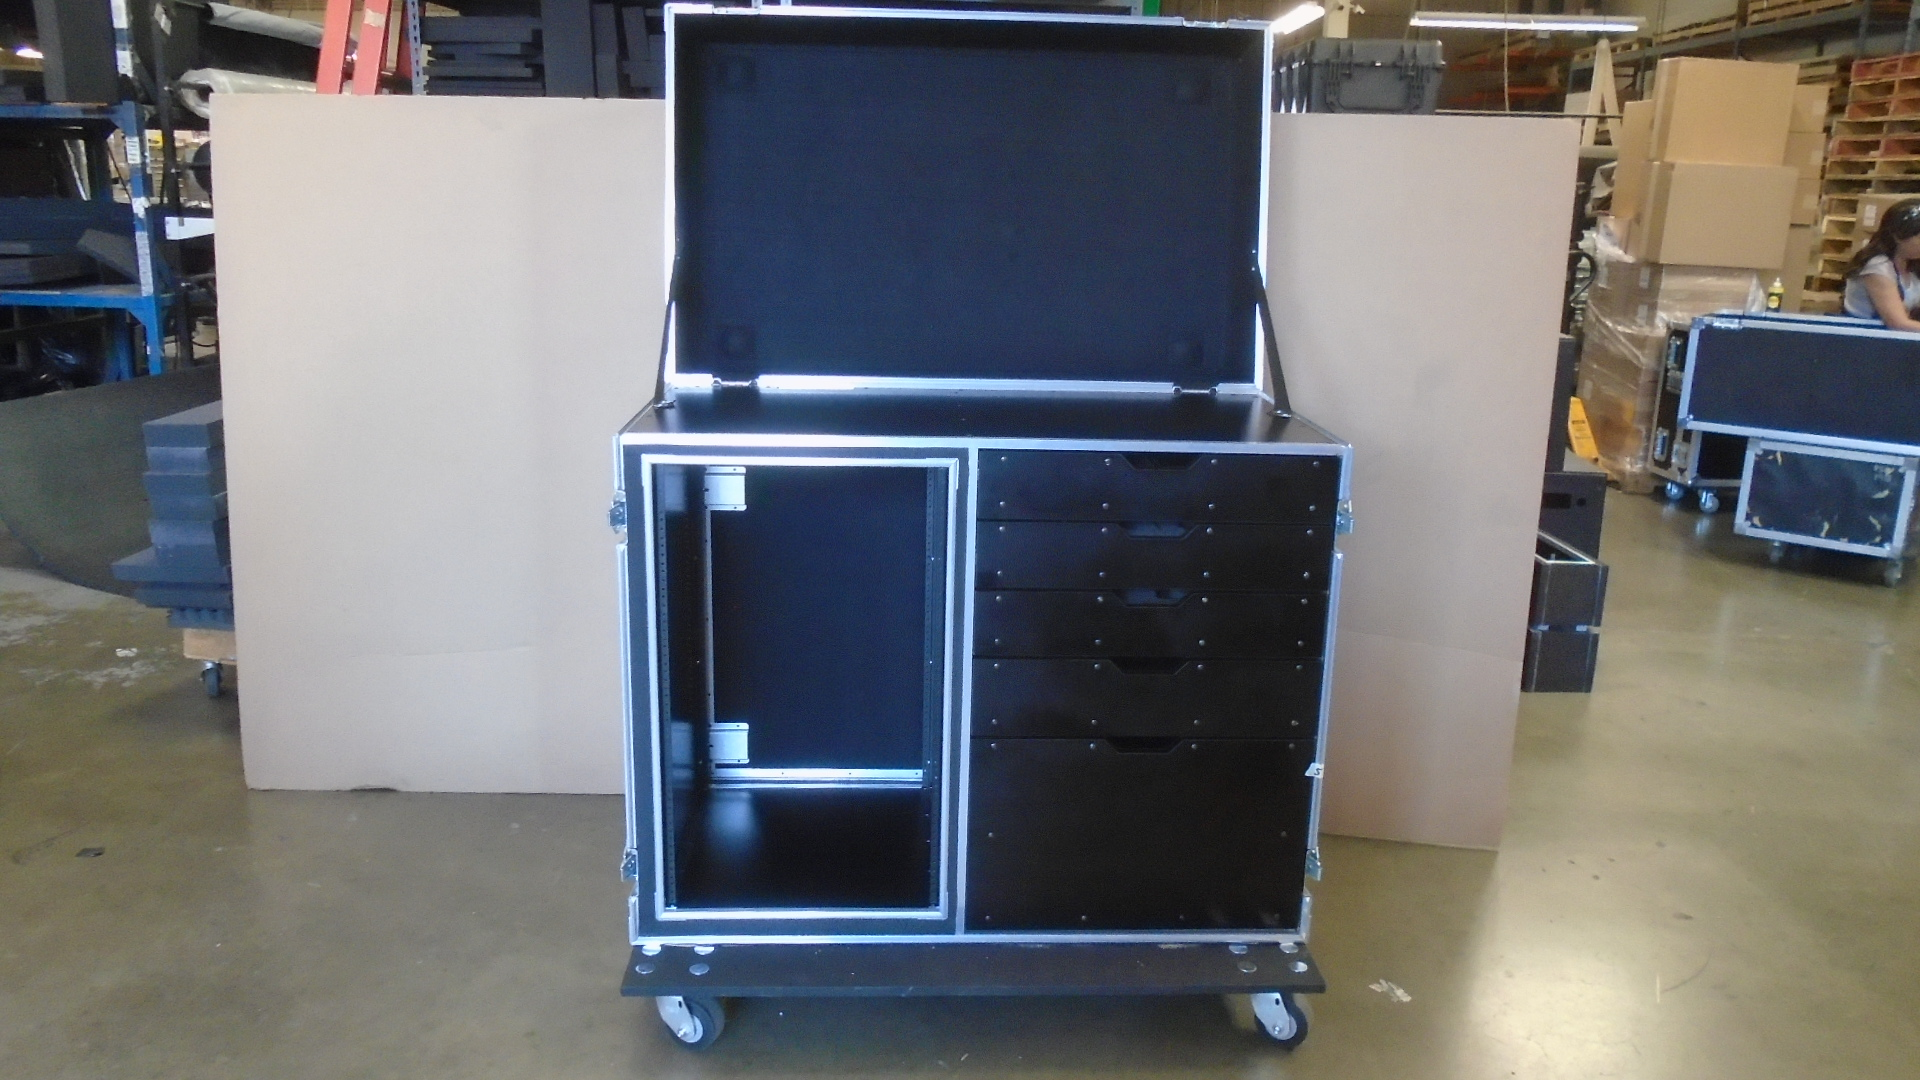 Print # 7729 - Custom Heavy Duty Double Wide 18-RU Rack Mount and 5 Drawer Work Box Combo Road Case By Nelson Case Corp